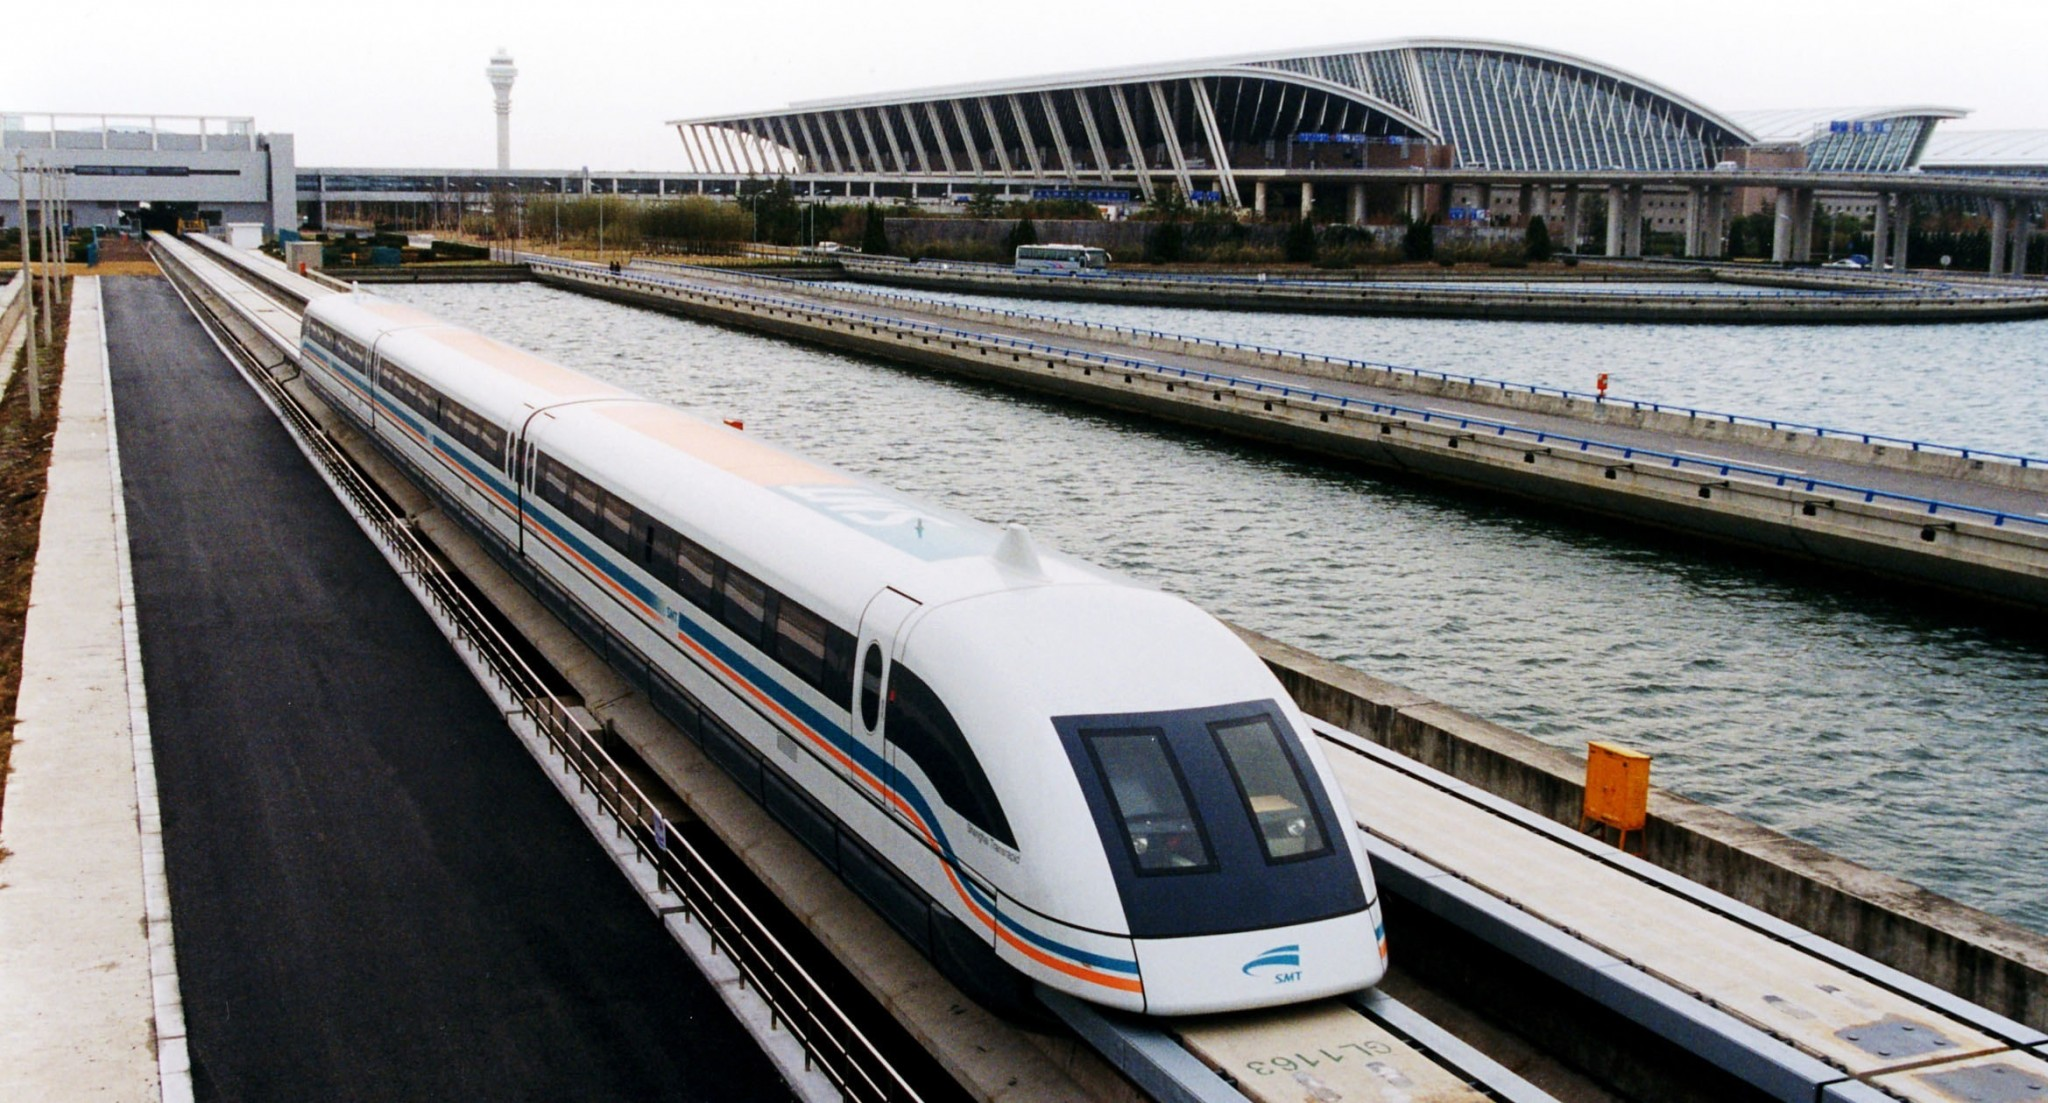 A magnetic levitating train in Shanghai. Crystallographic research could help spread this innovative form of transportation to countries around the globe. Photo: Skoltech.